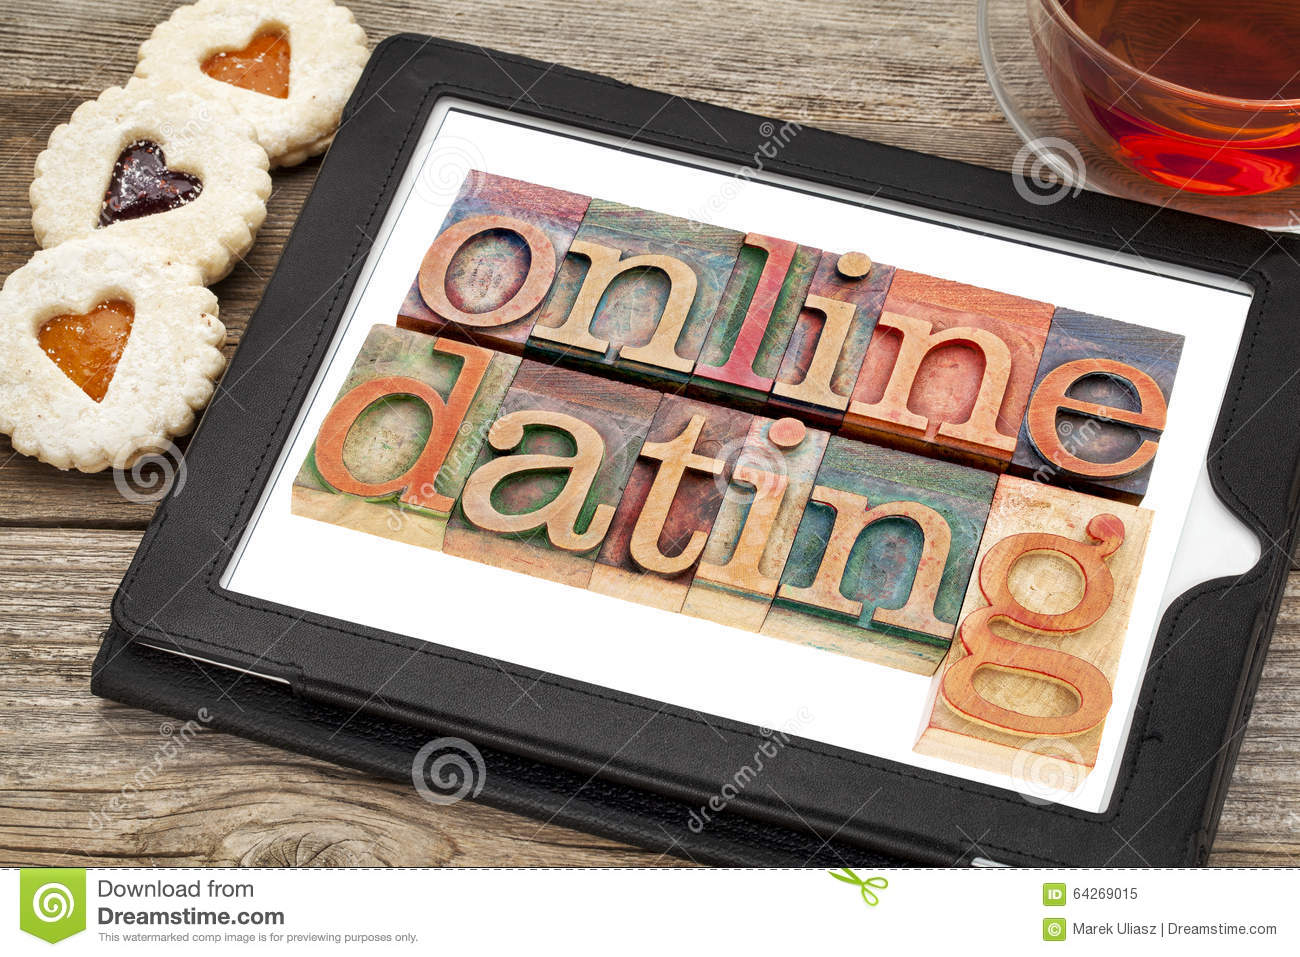 Online dating banners